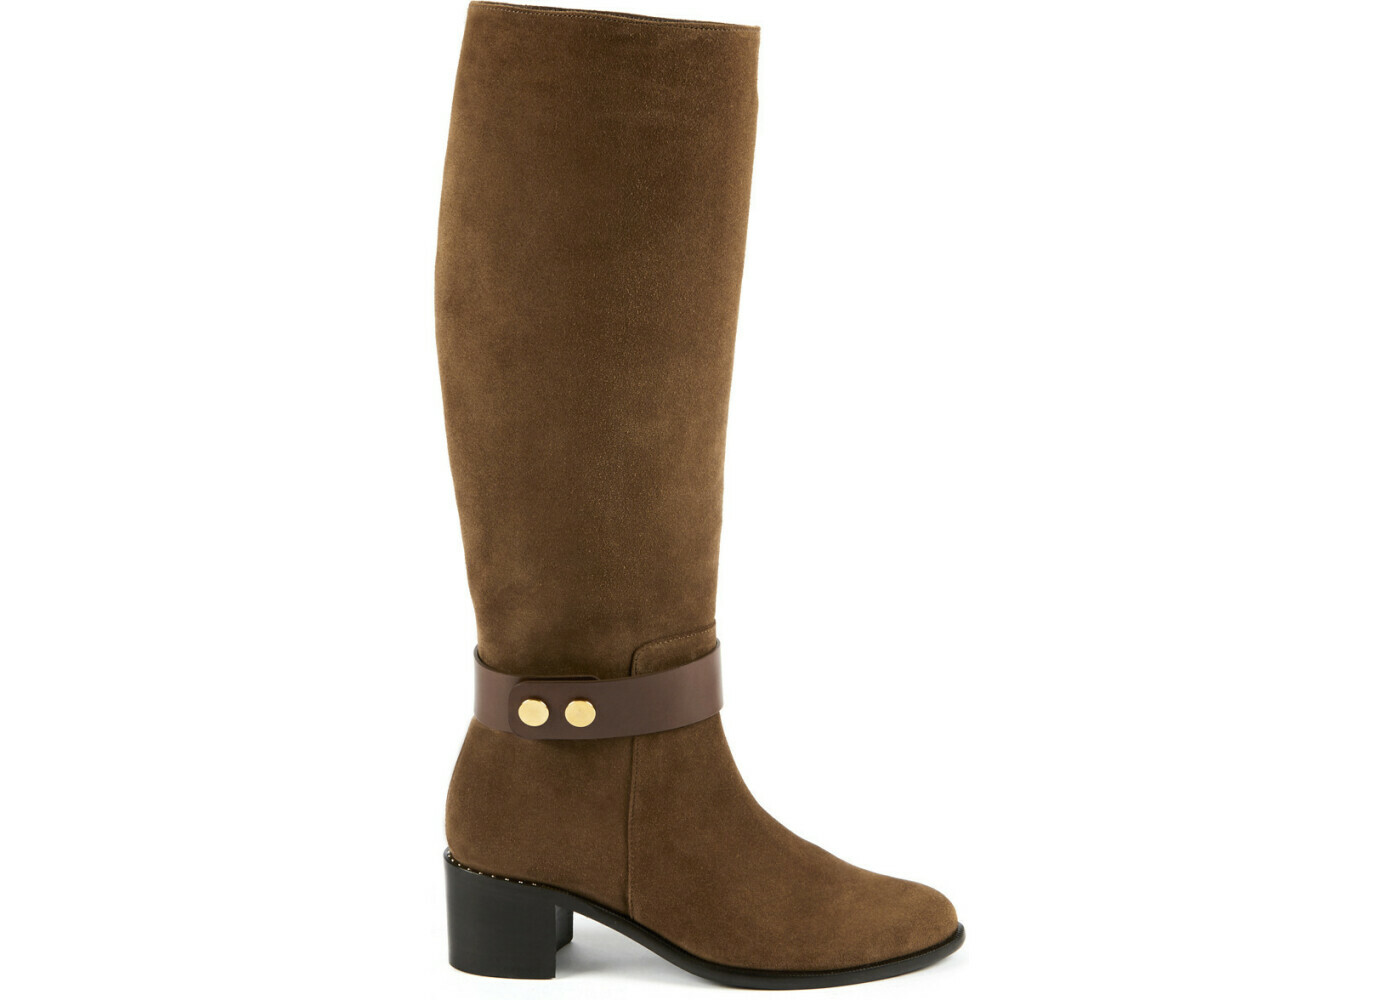 ADELIE Cognac Suede Leather P